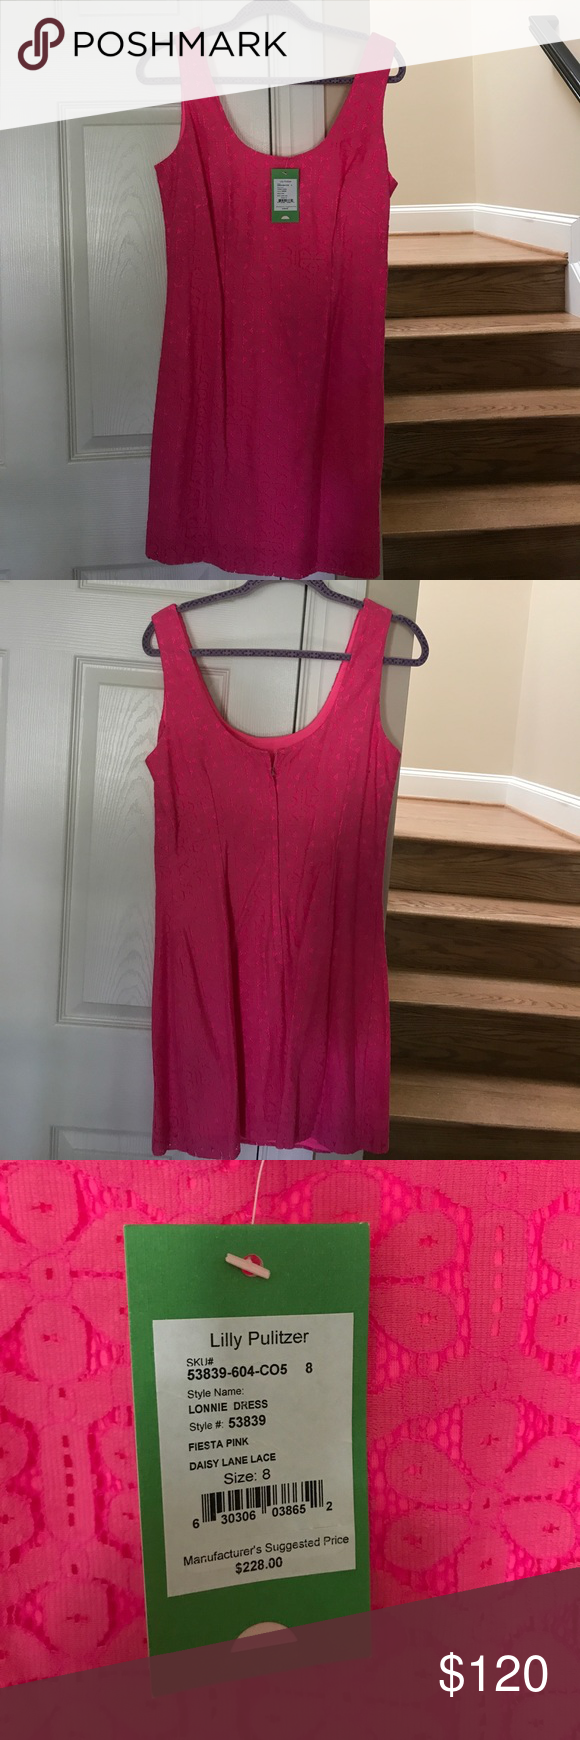 Lilly Pulitzer Lonnie Dress Lilly Pulitzer Lonnie Dress in fiesta pink. Never worn with original tags, originally $228 Lilly Pulitzer Dresses Mini